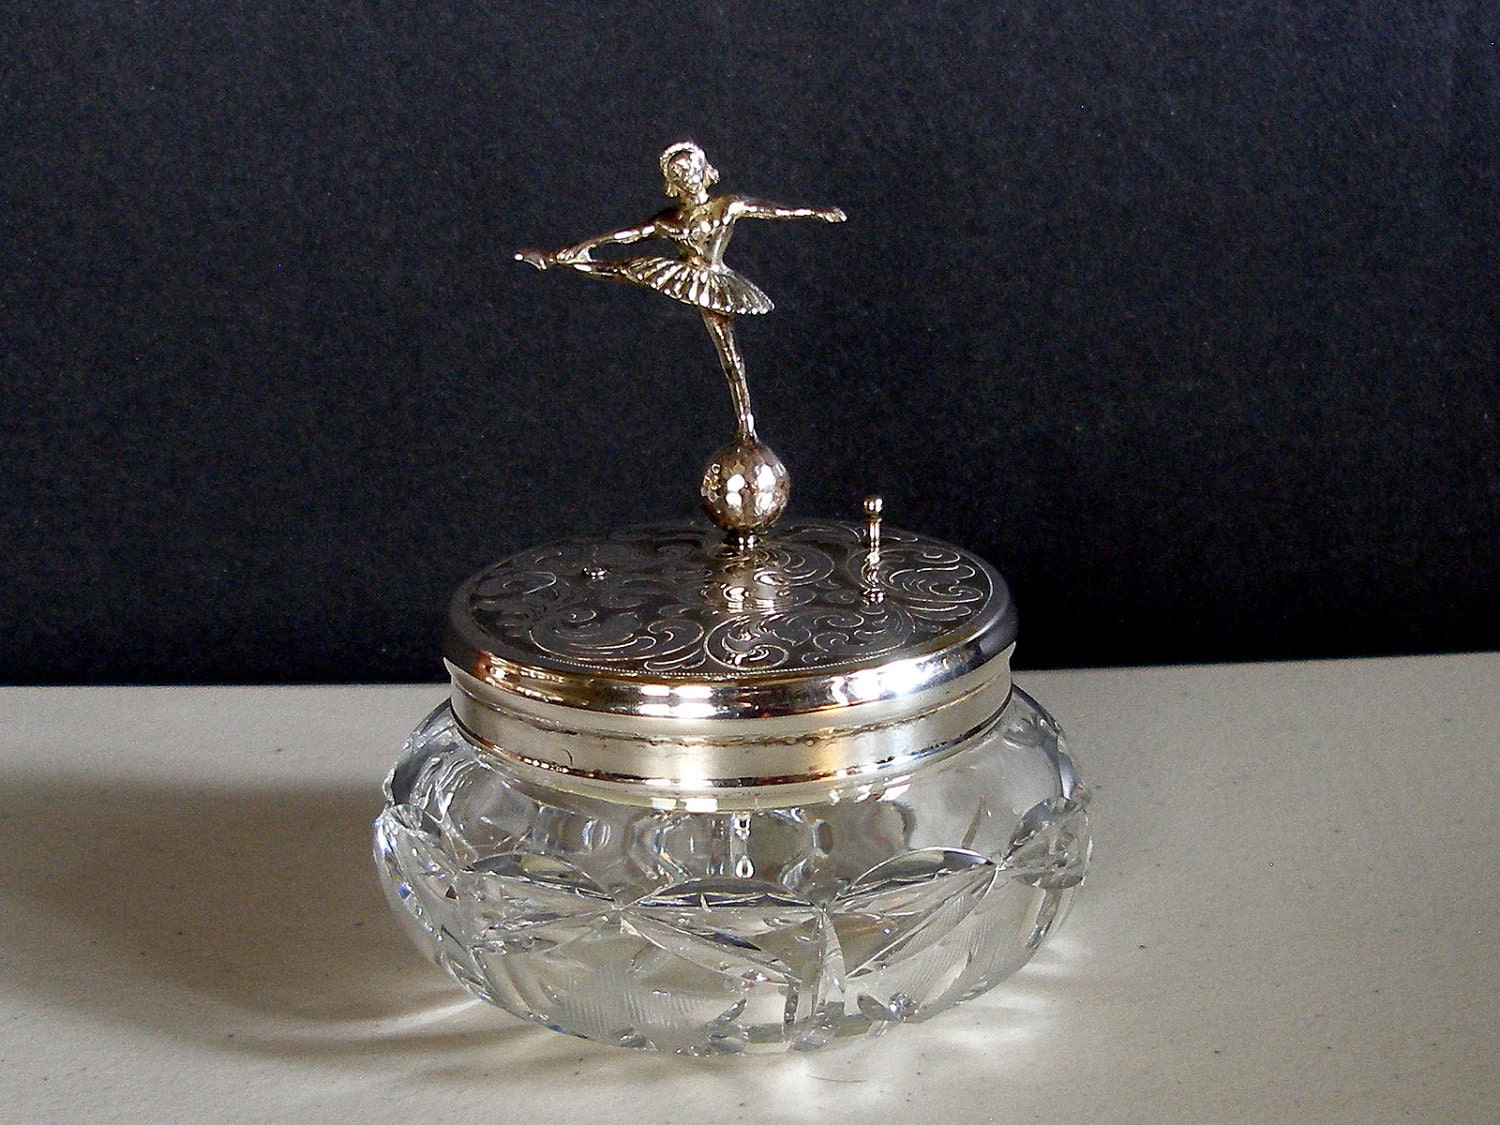 Vintage Reuge Ballerina Music Box Dresser Jewelry Powder